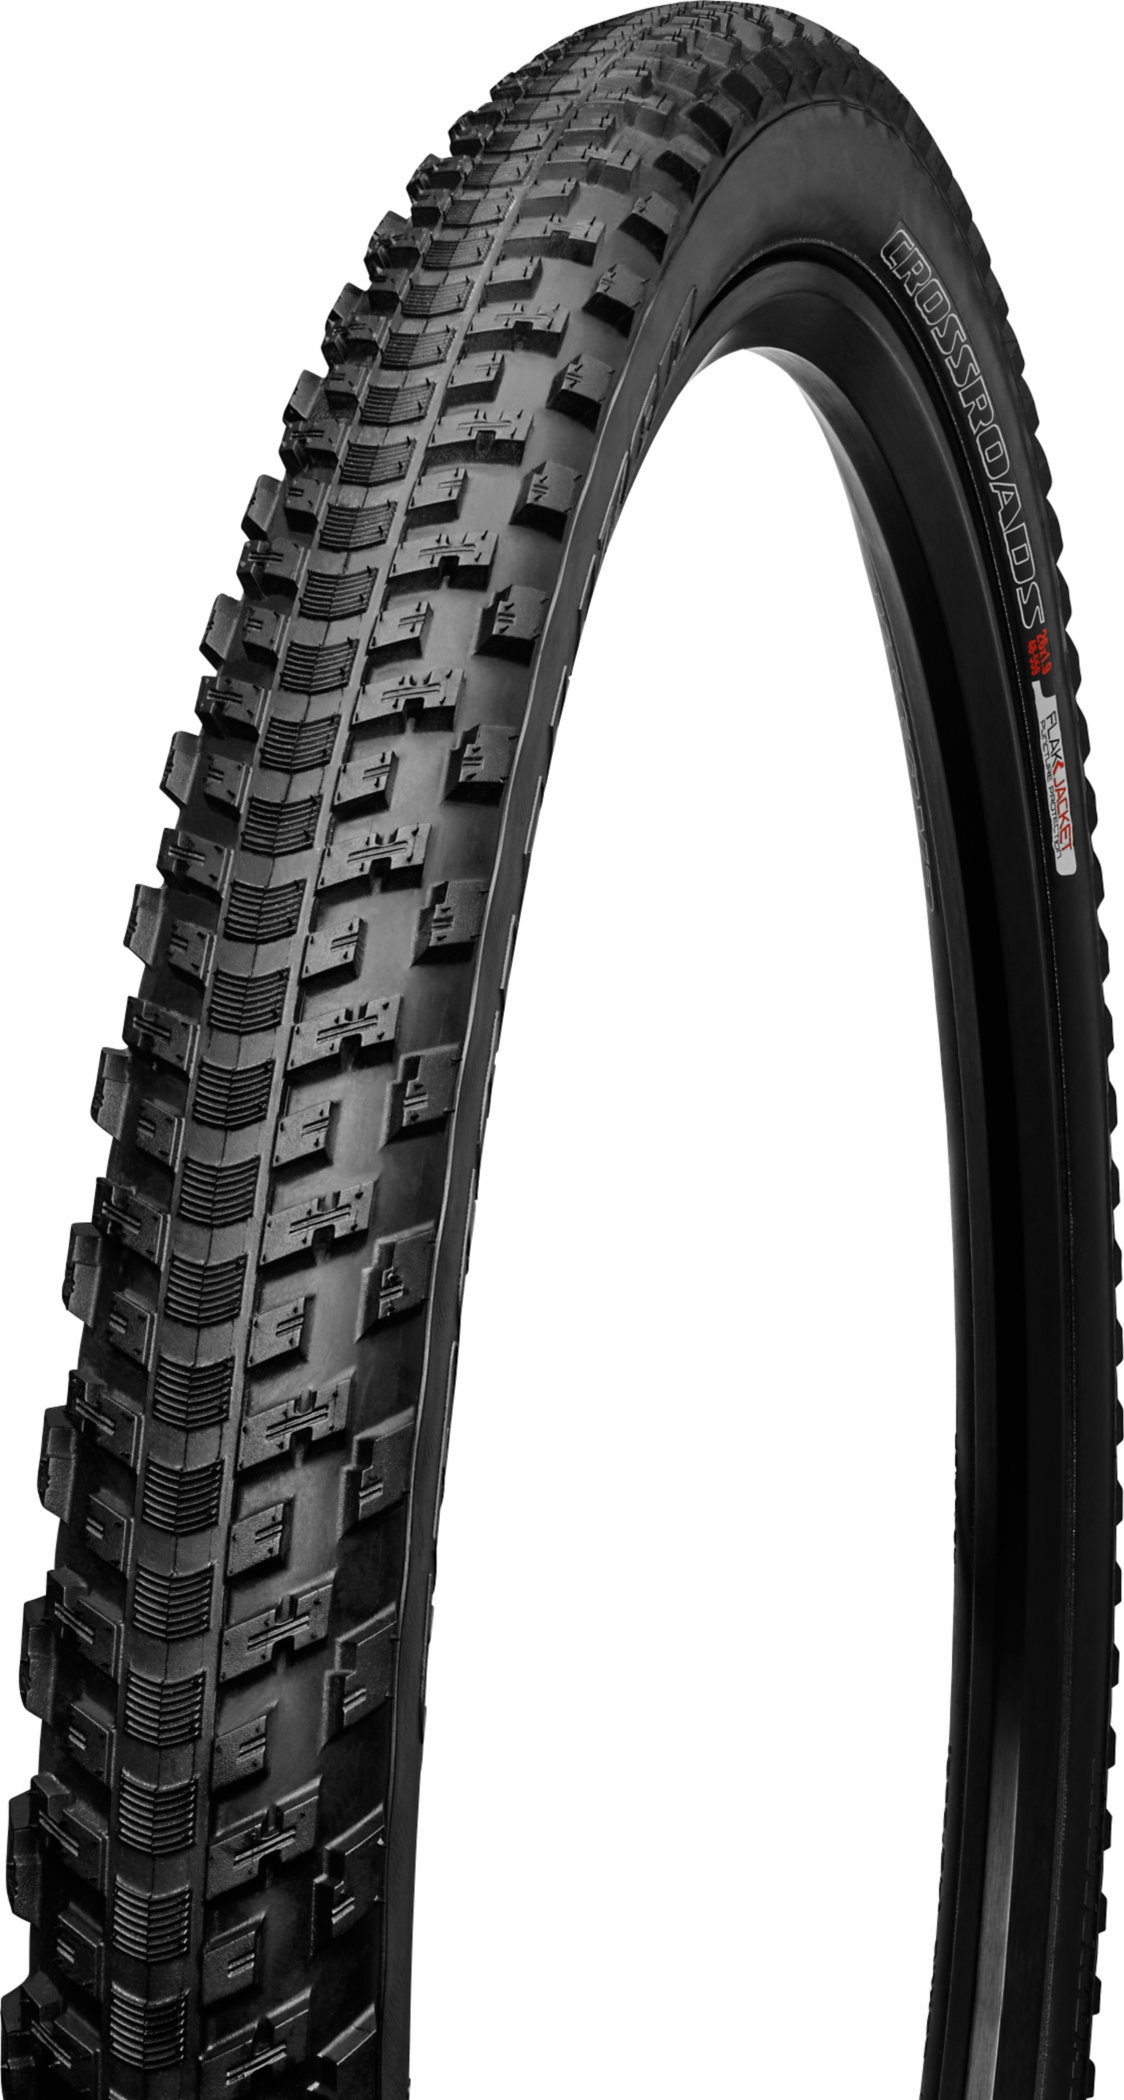 SPECIALIZED CROSSROADS ARM TIRE 650BX1.9 - Alpha Bikes